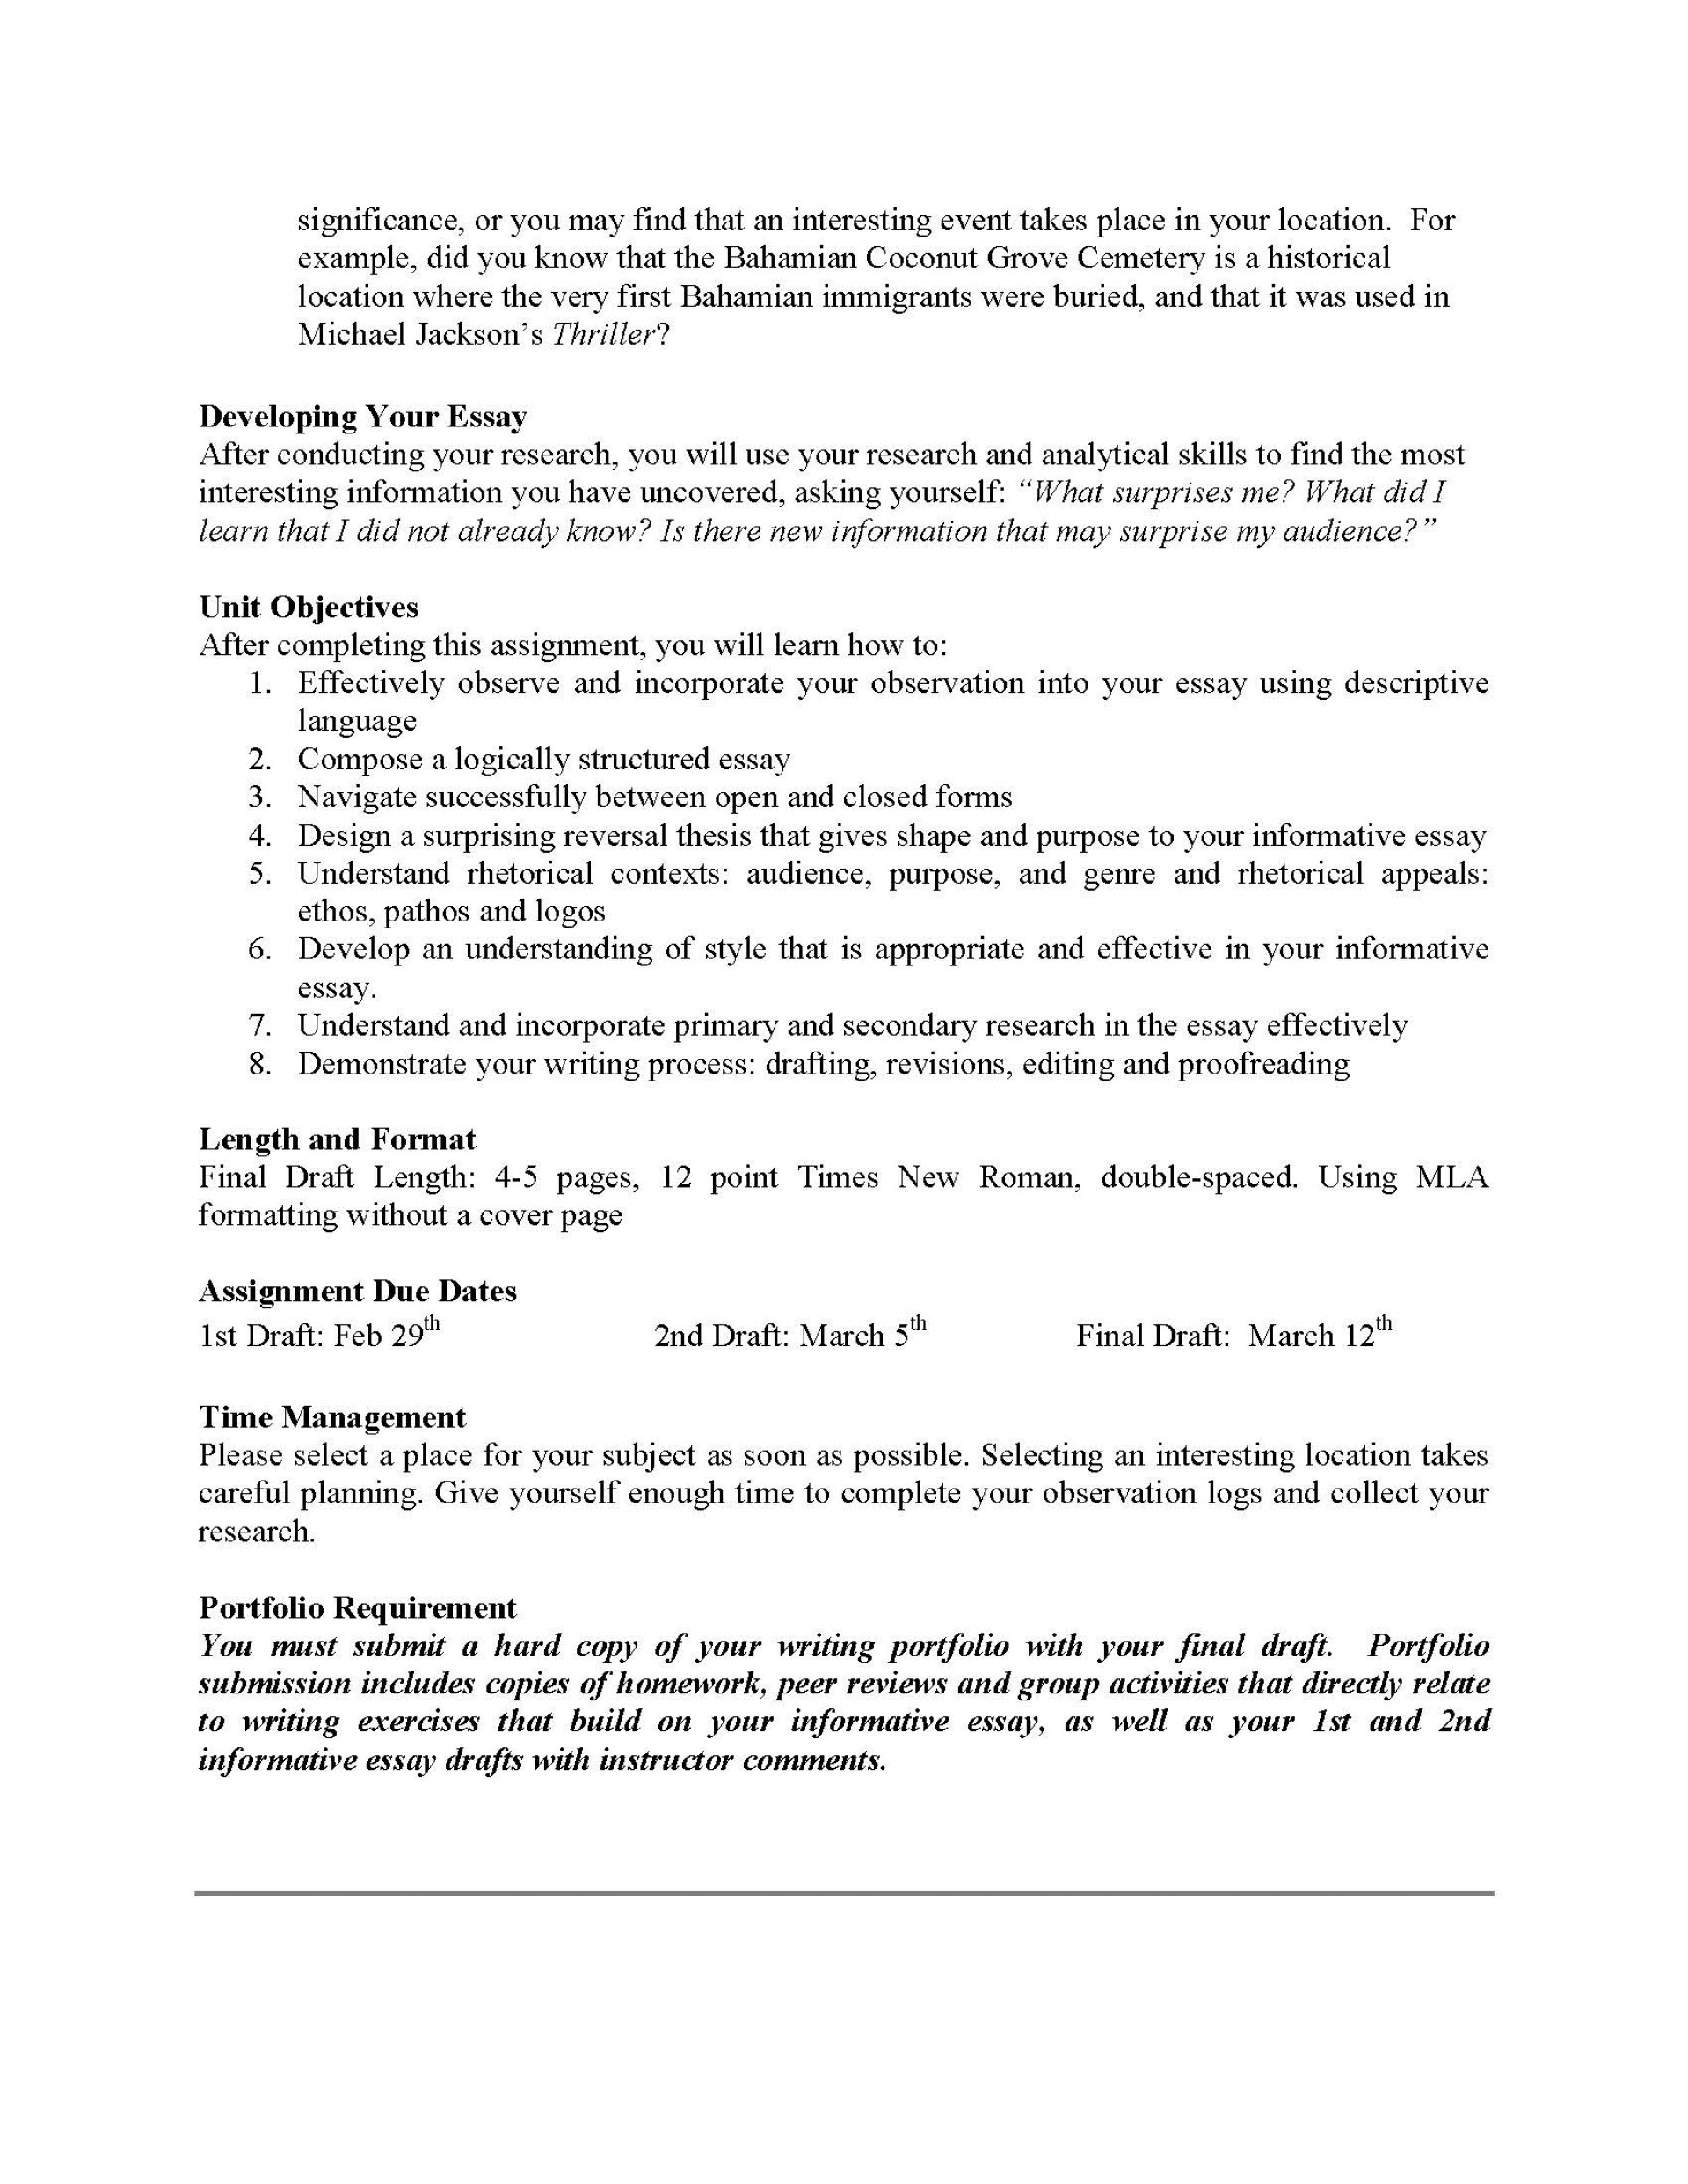 014 Informative Essay Unit Assignment Page 2 Dreaded Graphic Organizer Middle School Rubric 6th Grade Topics 1920